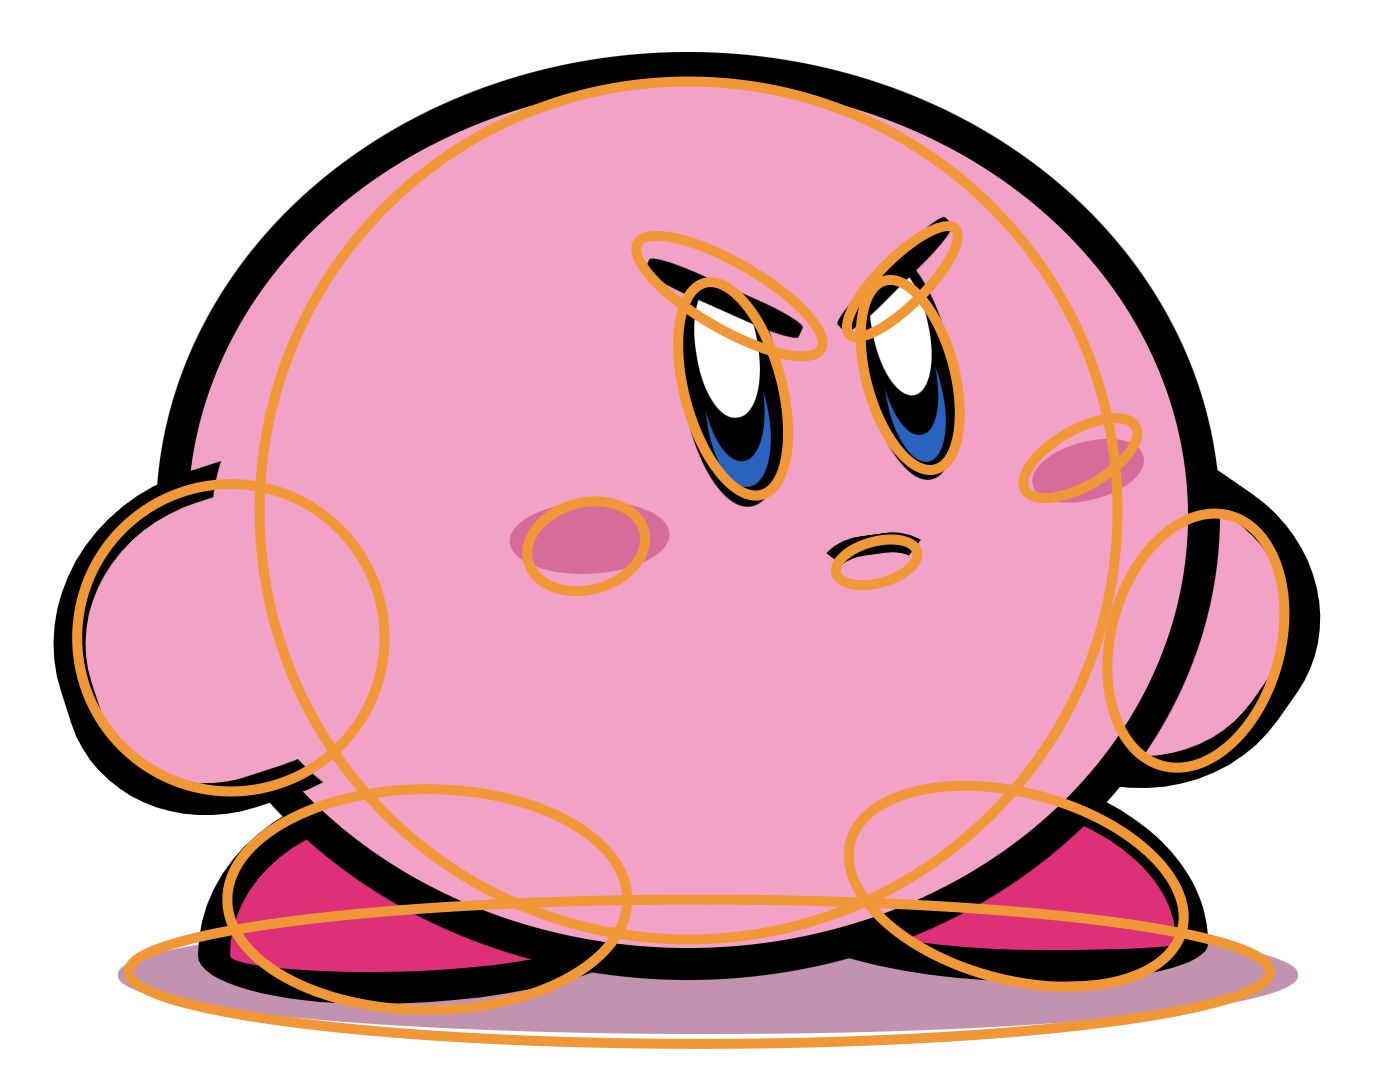 The shapes of Kirby